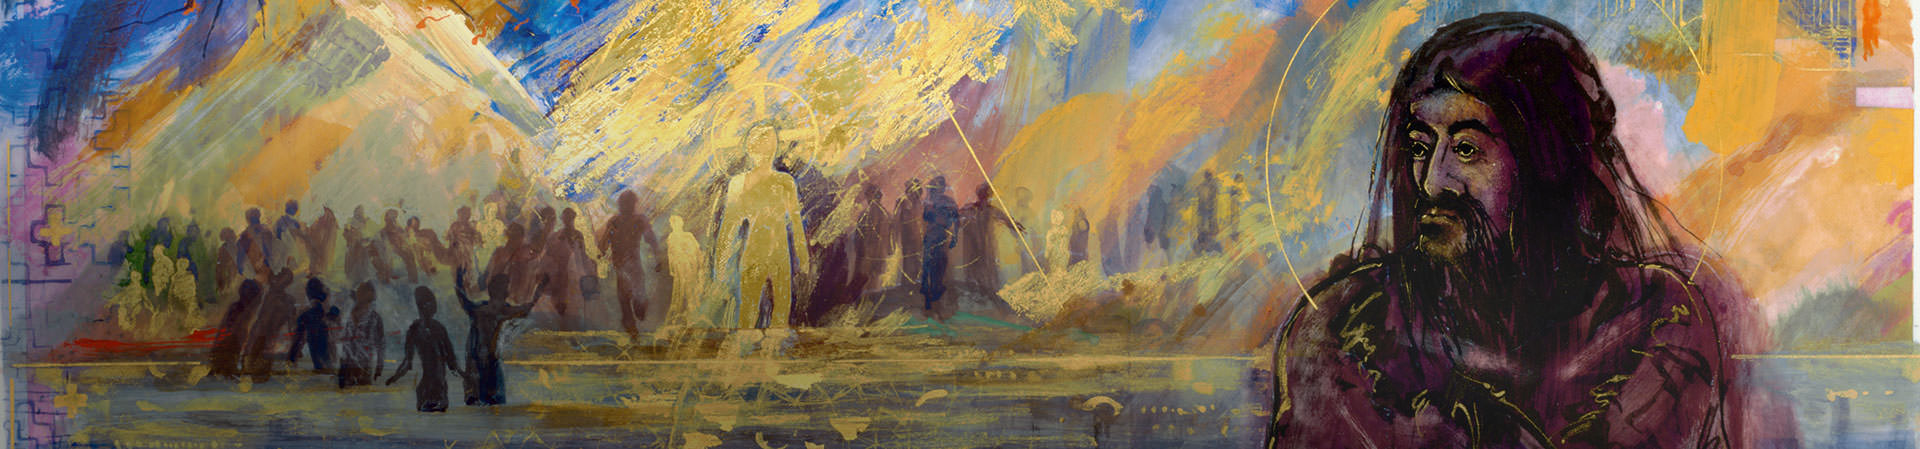 Baptism of Jesus, Donald Jackson, Copyright 2002, The Saint John's Bible, Saint John's University, Collegeville, Minnesota USA. Used by permission. All rights reserved.